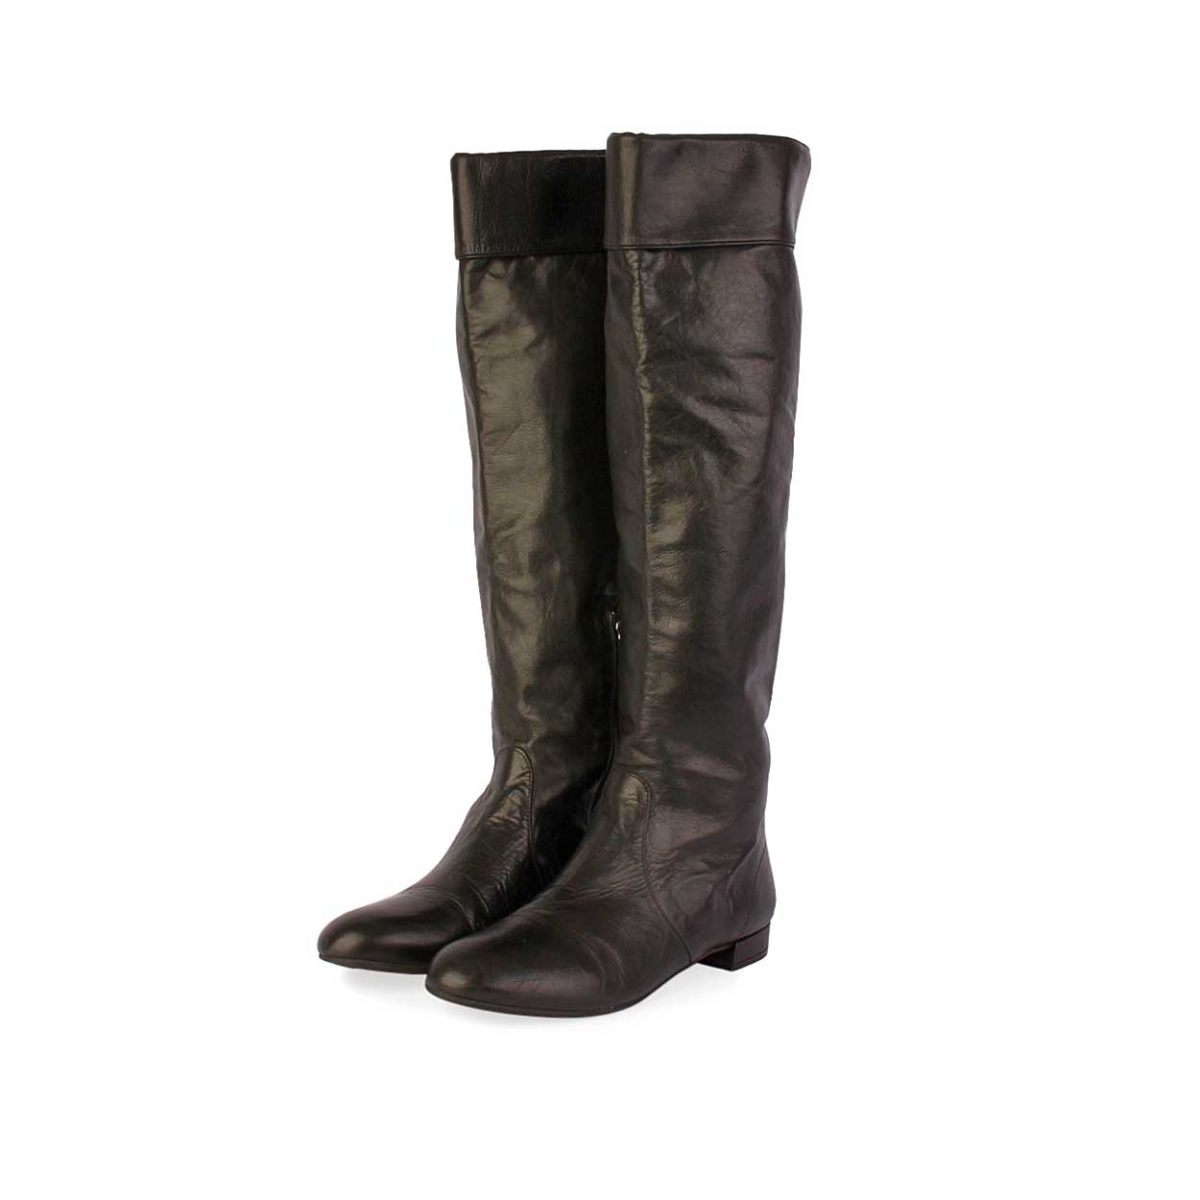 adc167248 PRADA Leather Knee High Boots Black - S: 35.5 (3) | Luxity